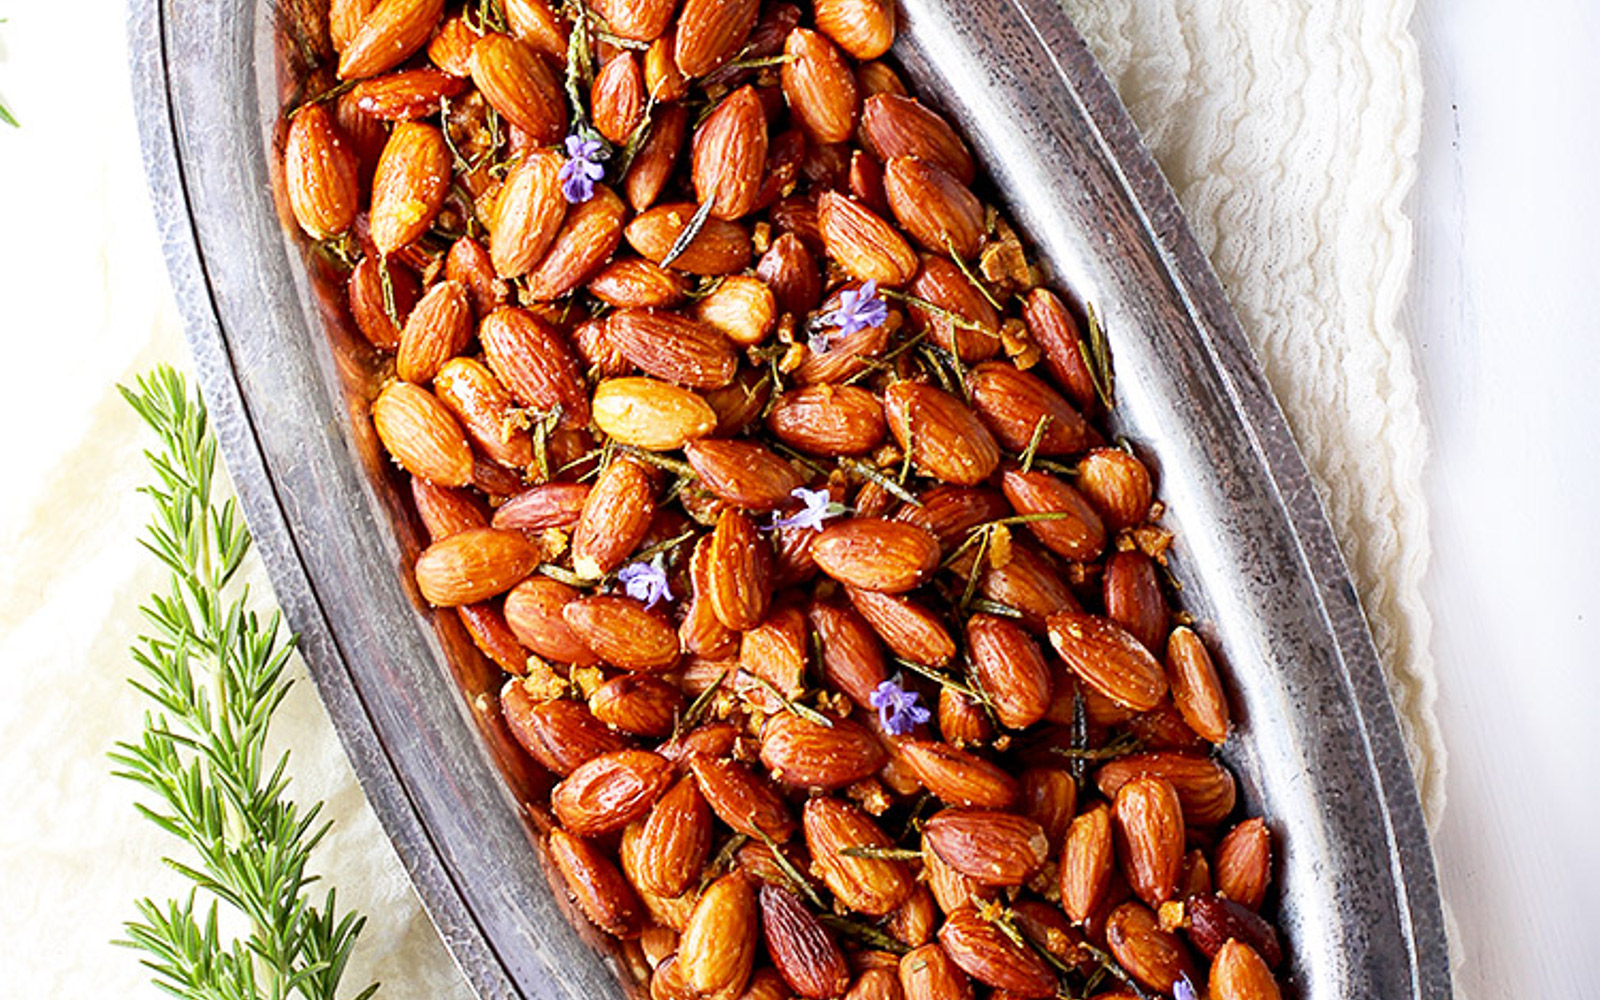 Rosemary and Garlic Roasted Almonds